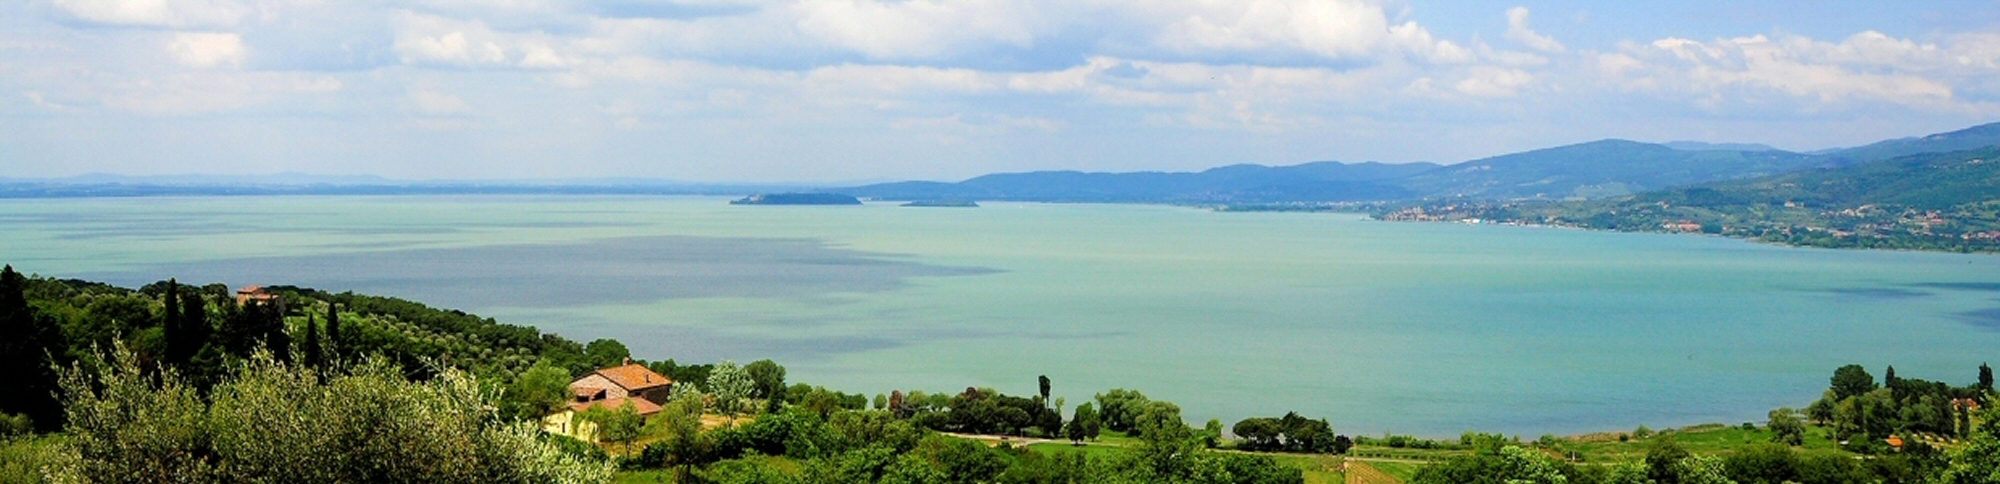 Home News blog TrasimenoCamping 2